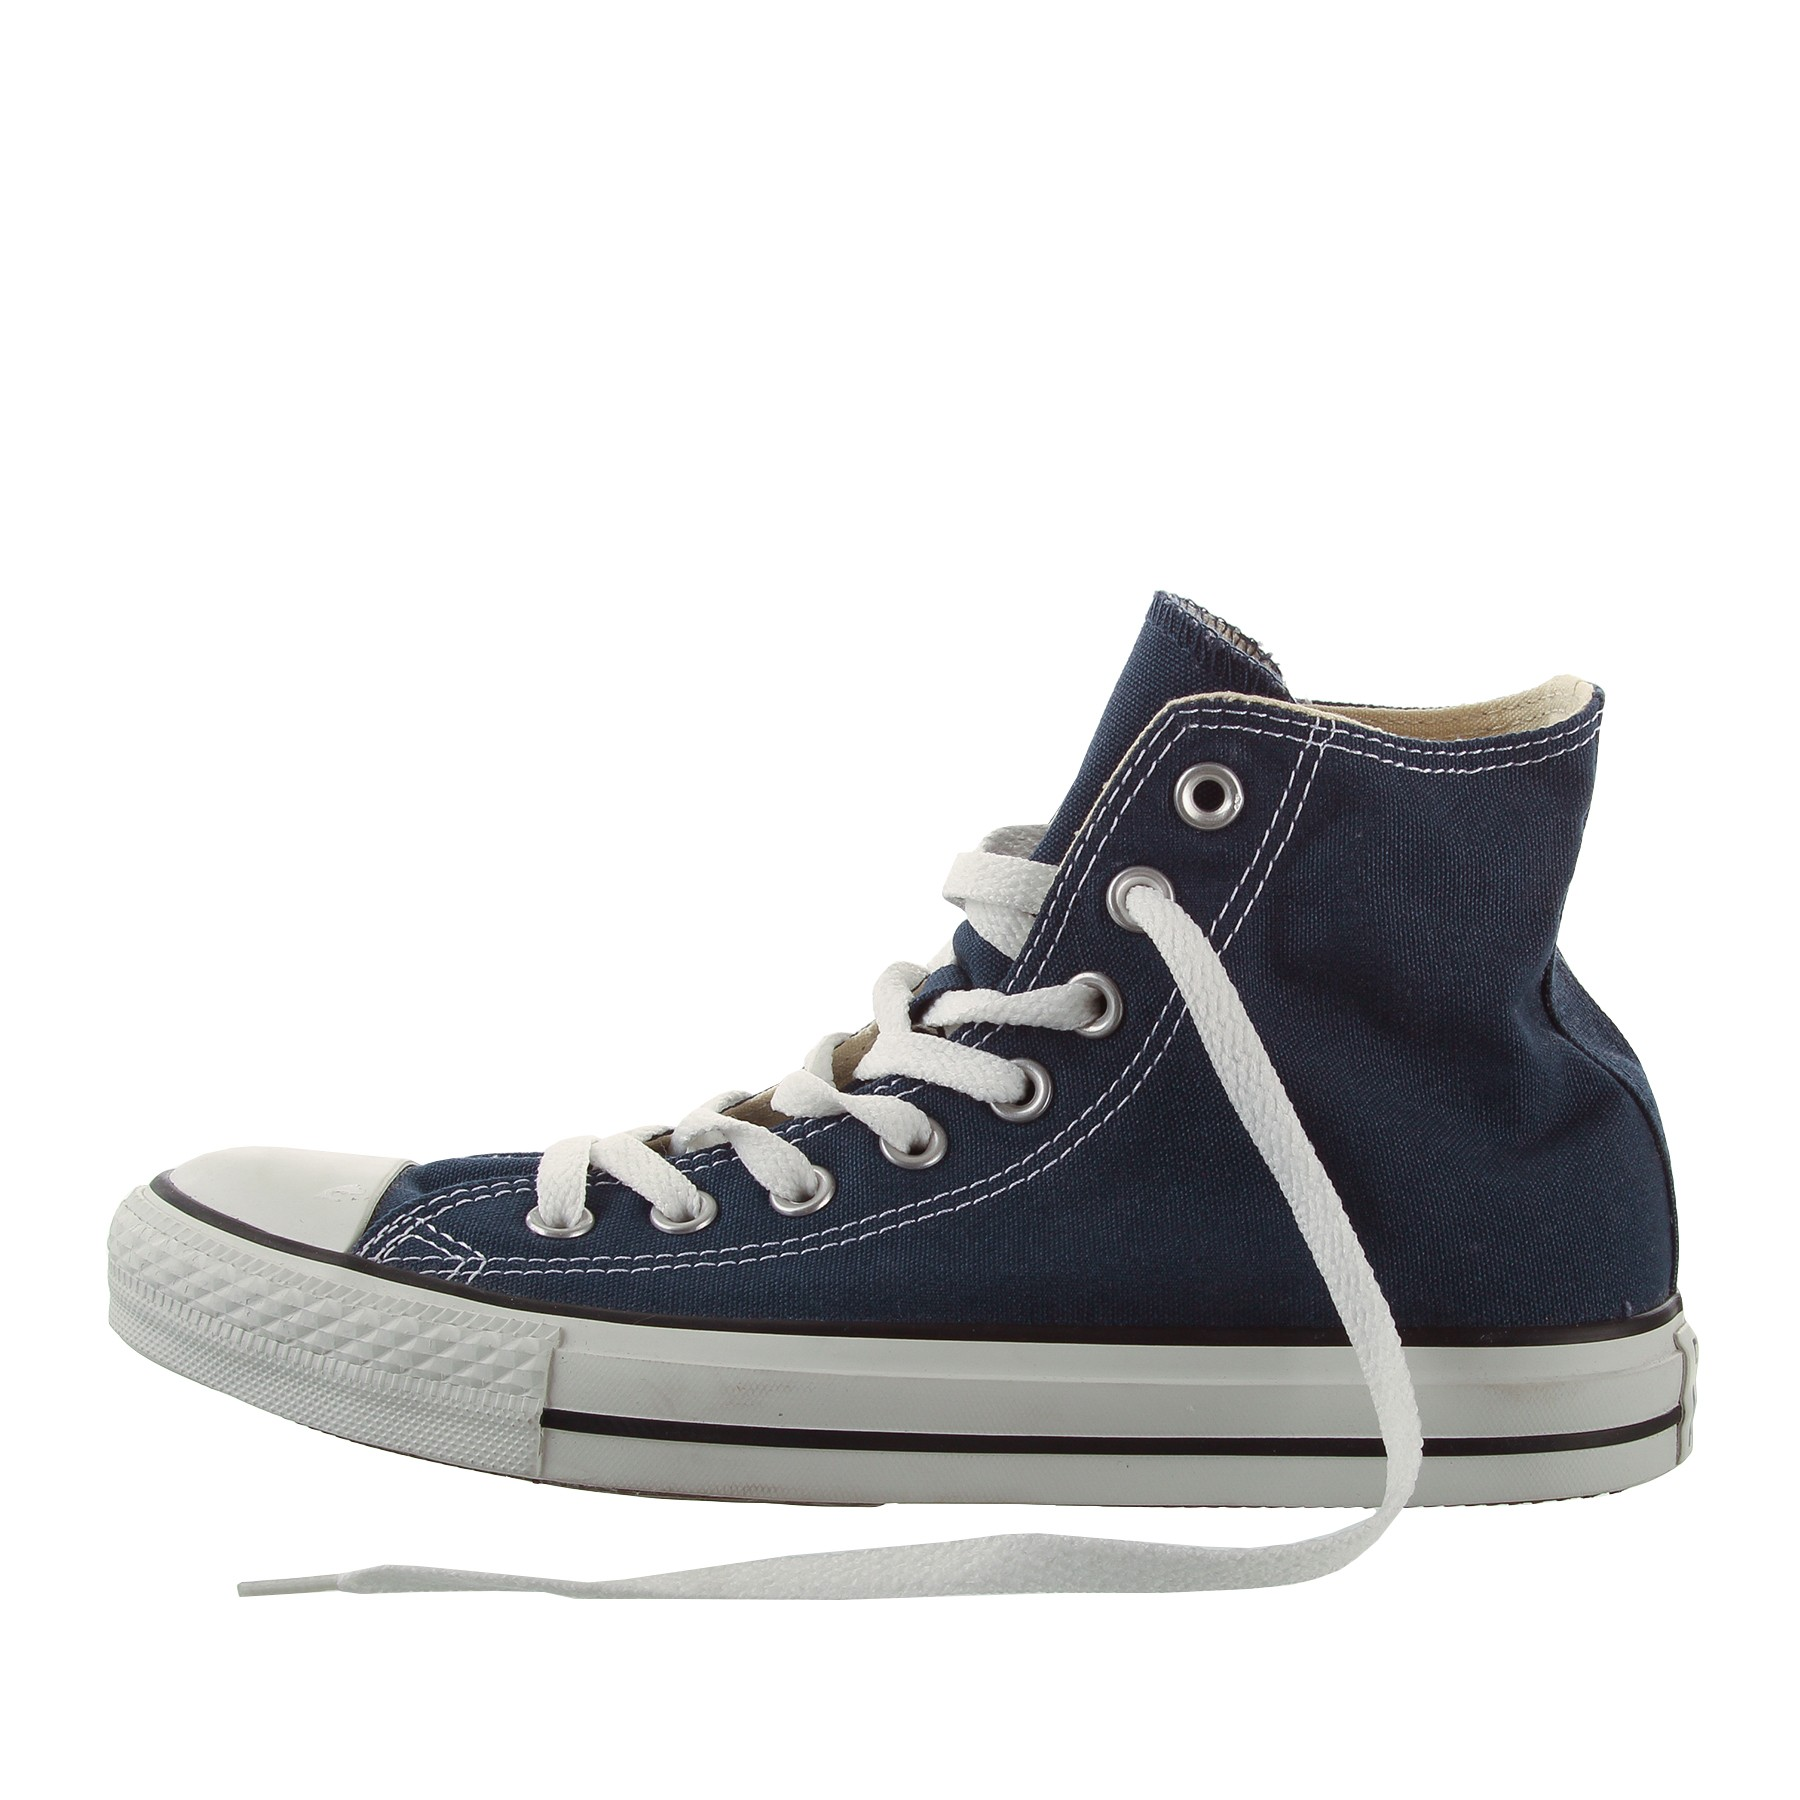 M9622 CT CHUCK TAYLOR AS CORE/NAVY Bild https://cdn03.plentymarkets.com/zsy4vjx32p87/item/images/4285/full/M9622-ama-02.JPG